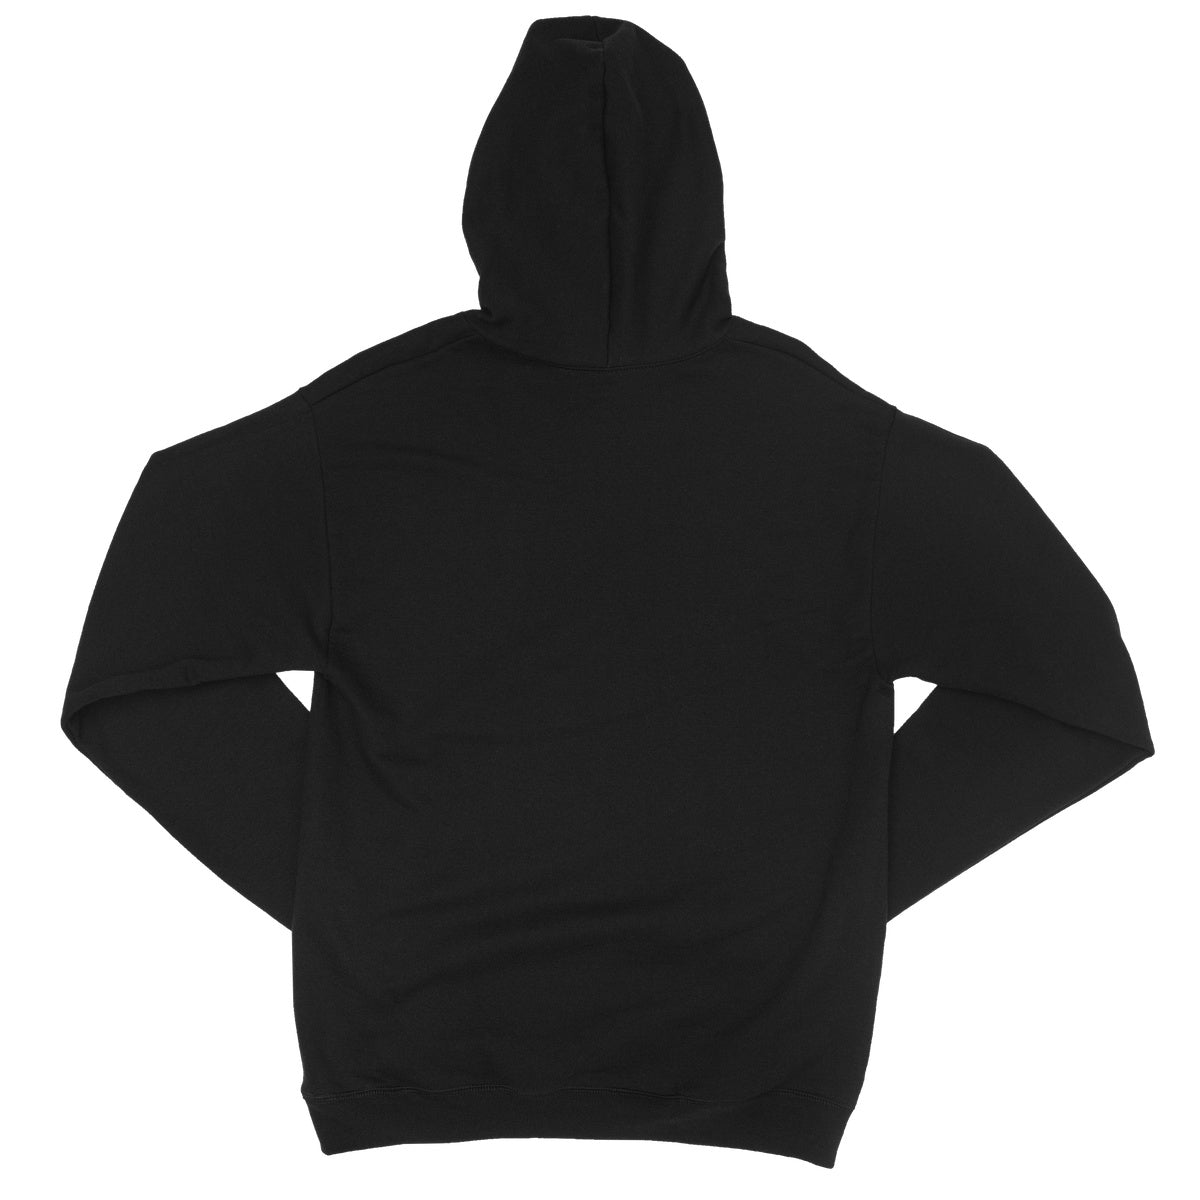 The Awakening Big Ork College Hoodie